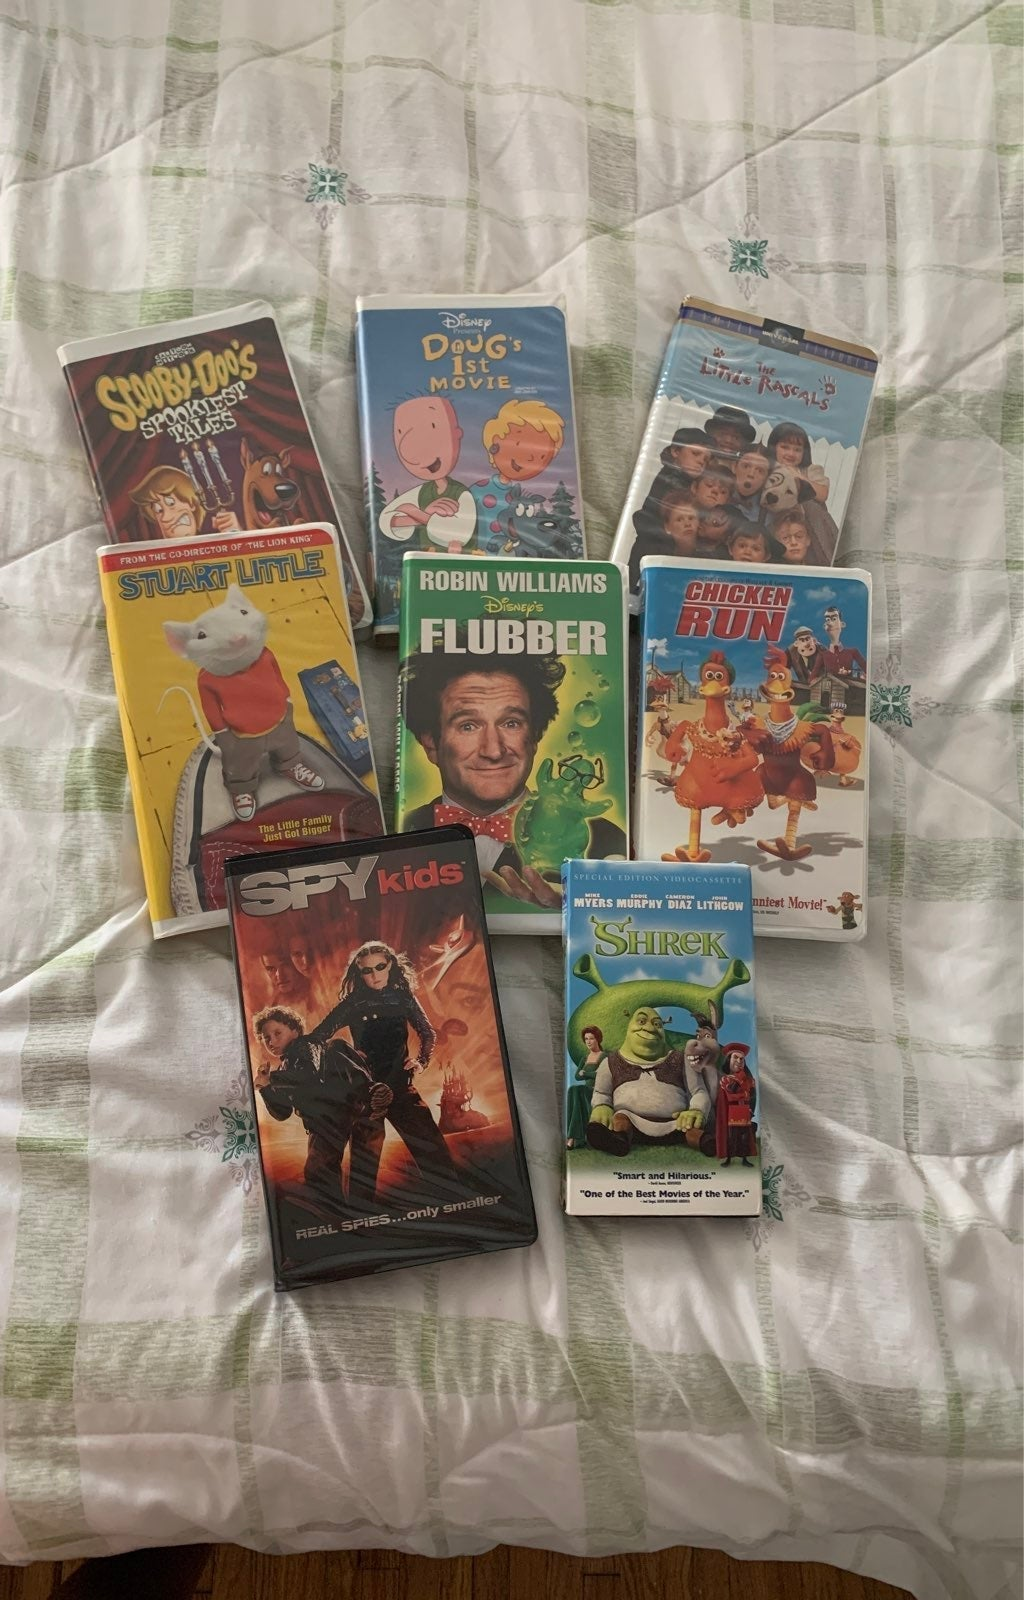 VHS tapes collection of Action/Adventure